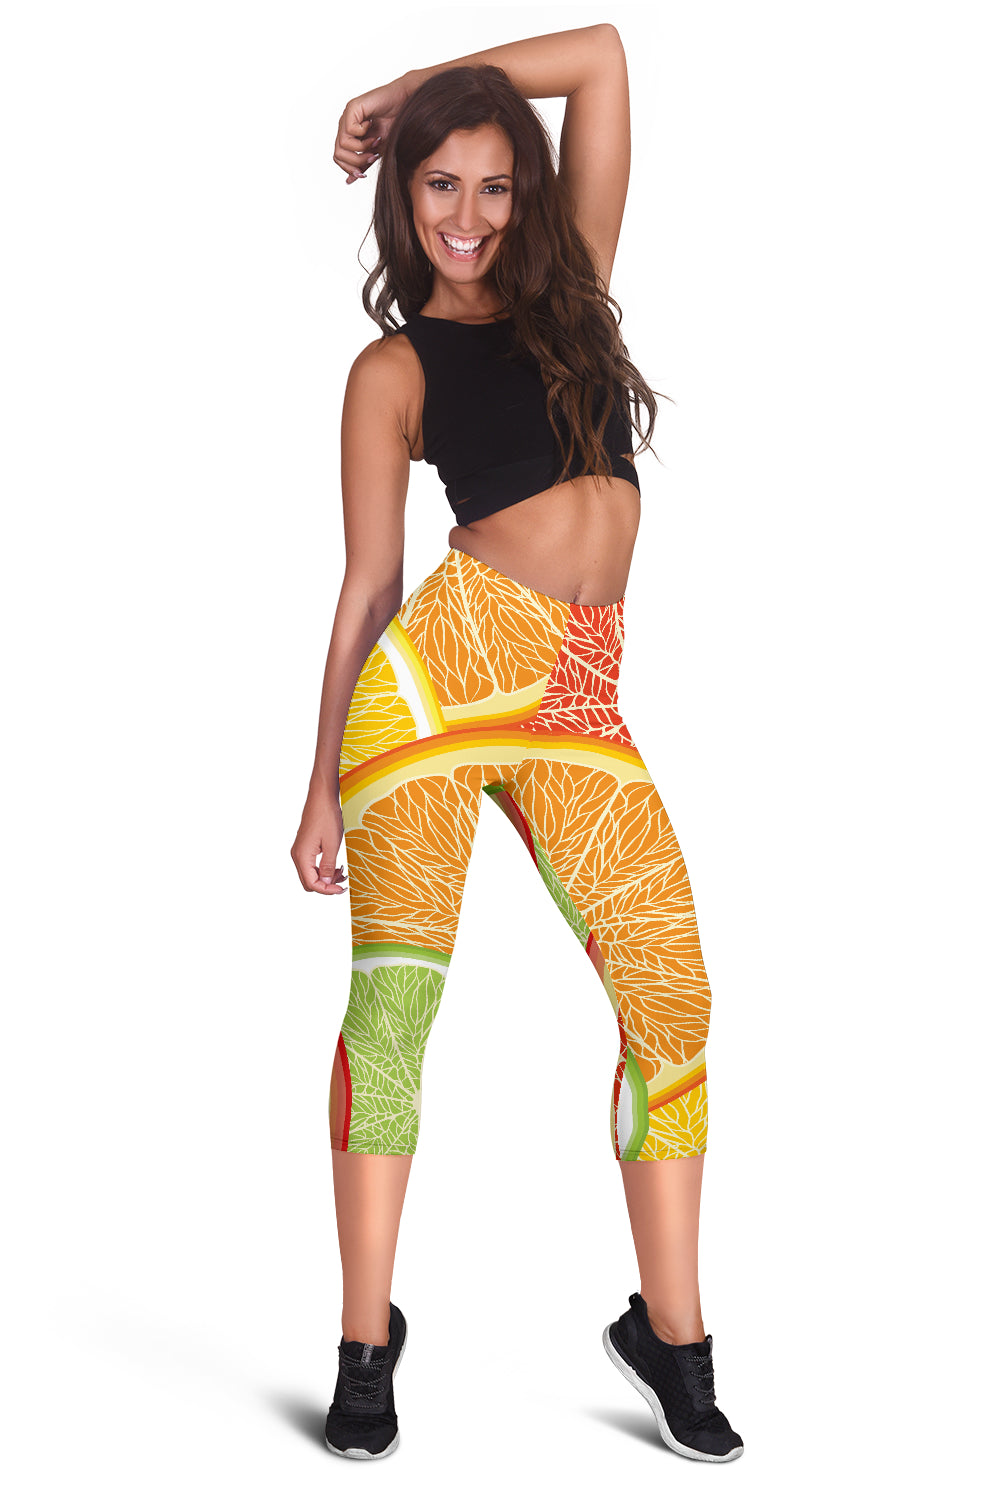 Citrus Slice Women's Capris Leggings